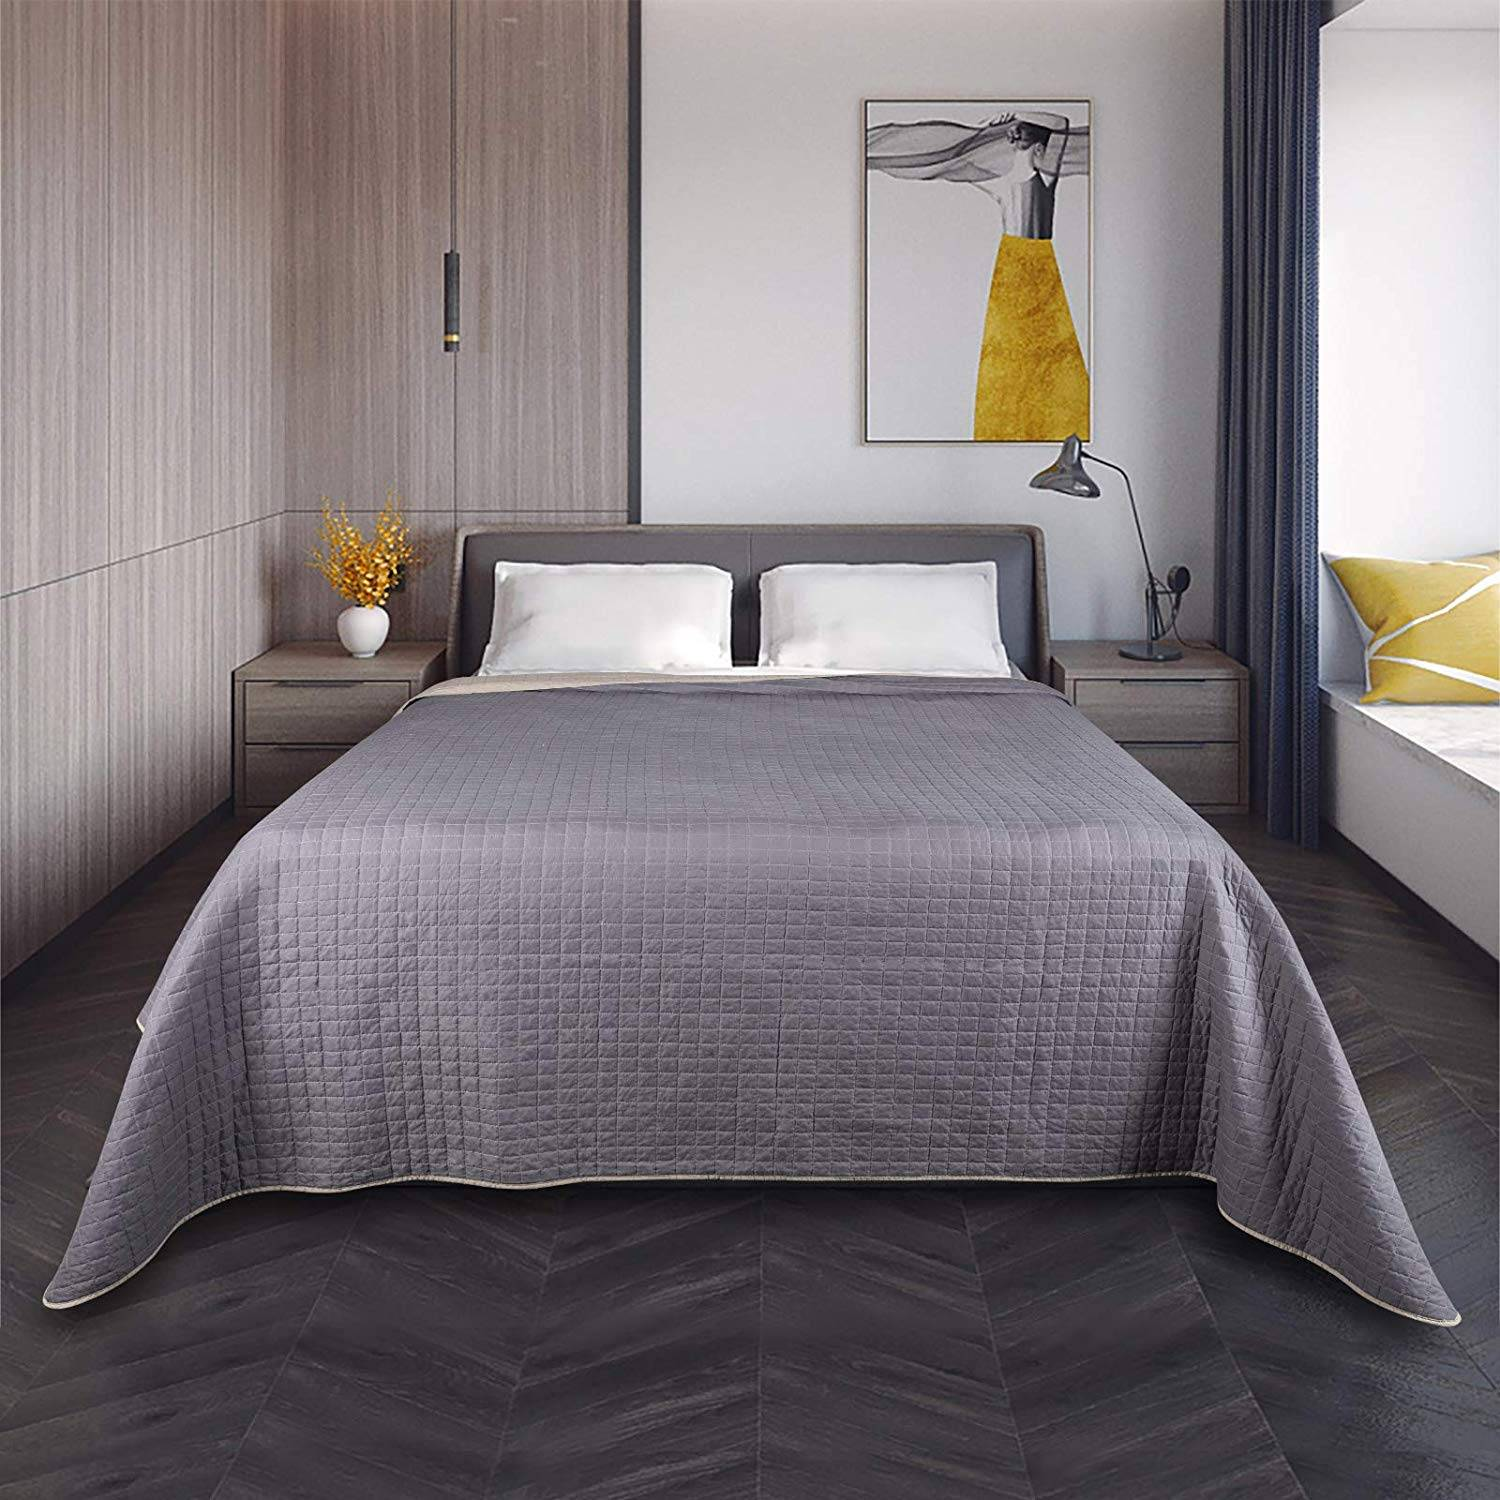 bedspread double bed lined and quilted taupe dark gray